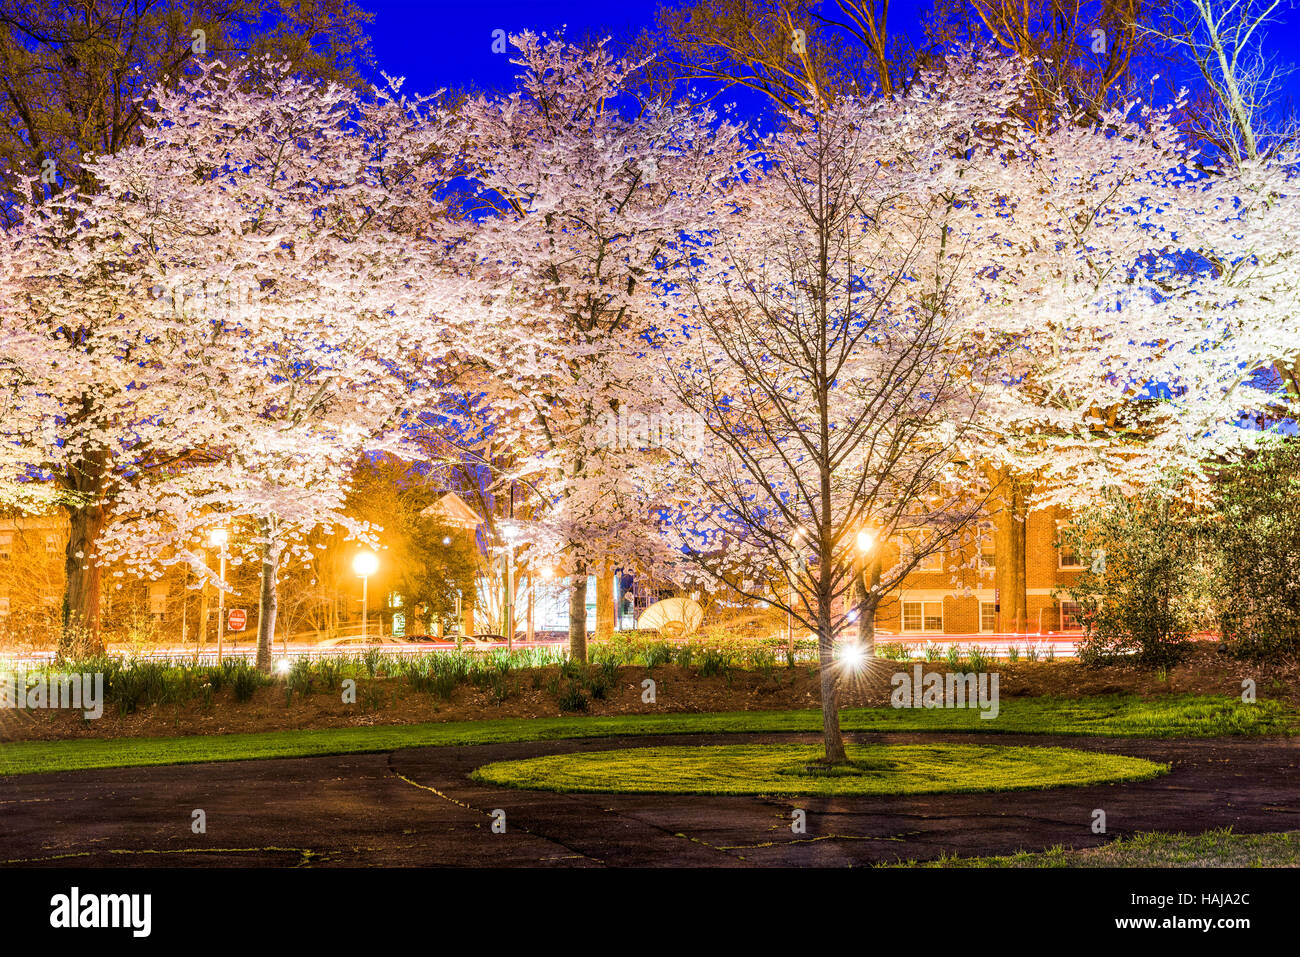 Spring cherry blossoms foliage at night in Athens, GA, USA. - Stock Image